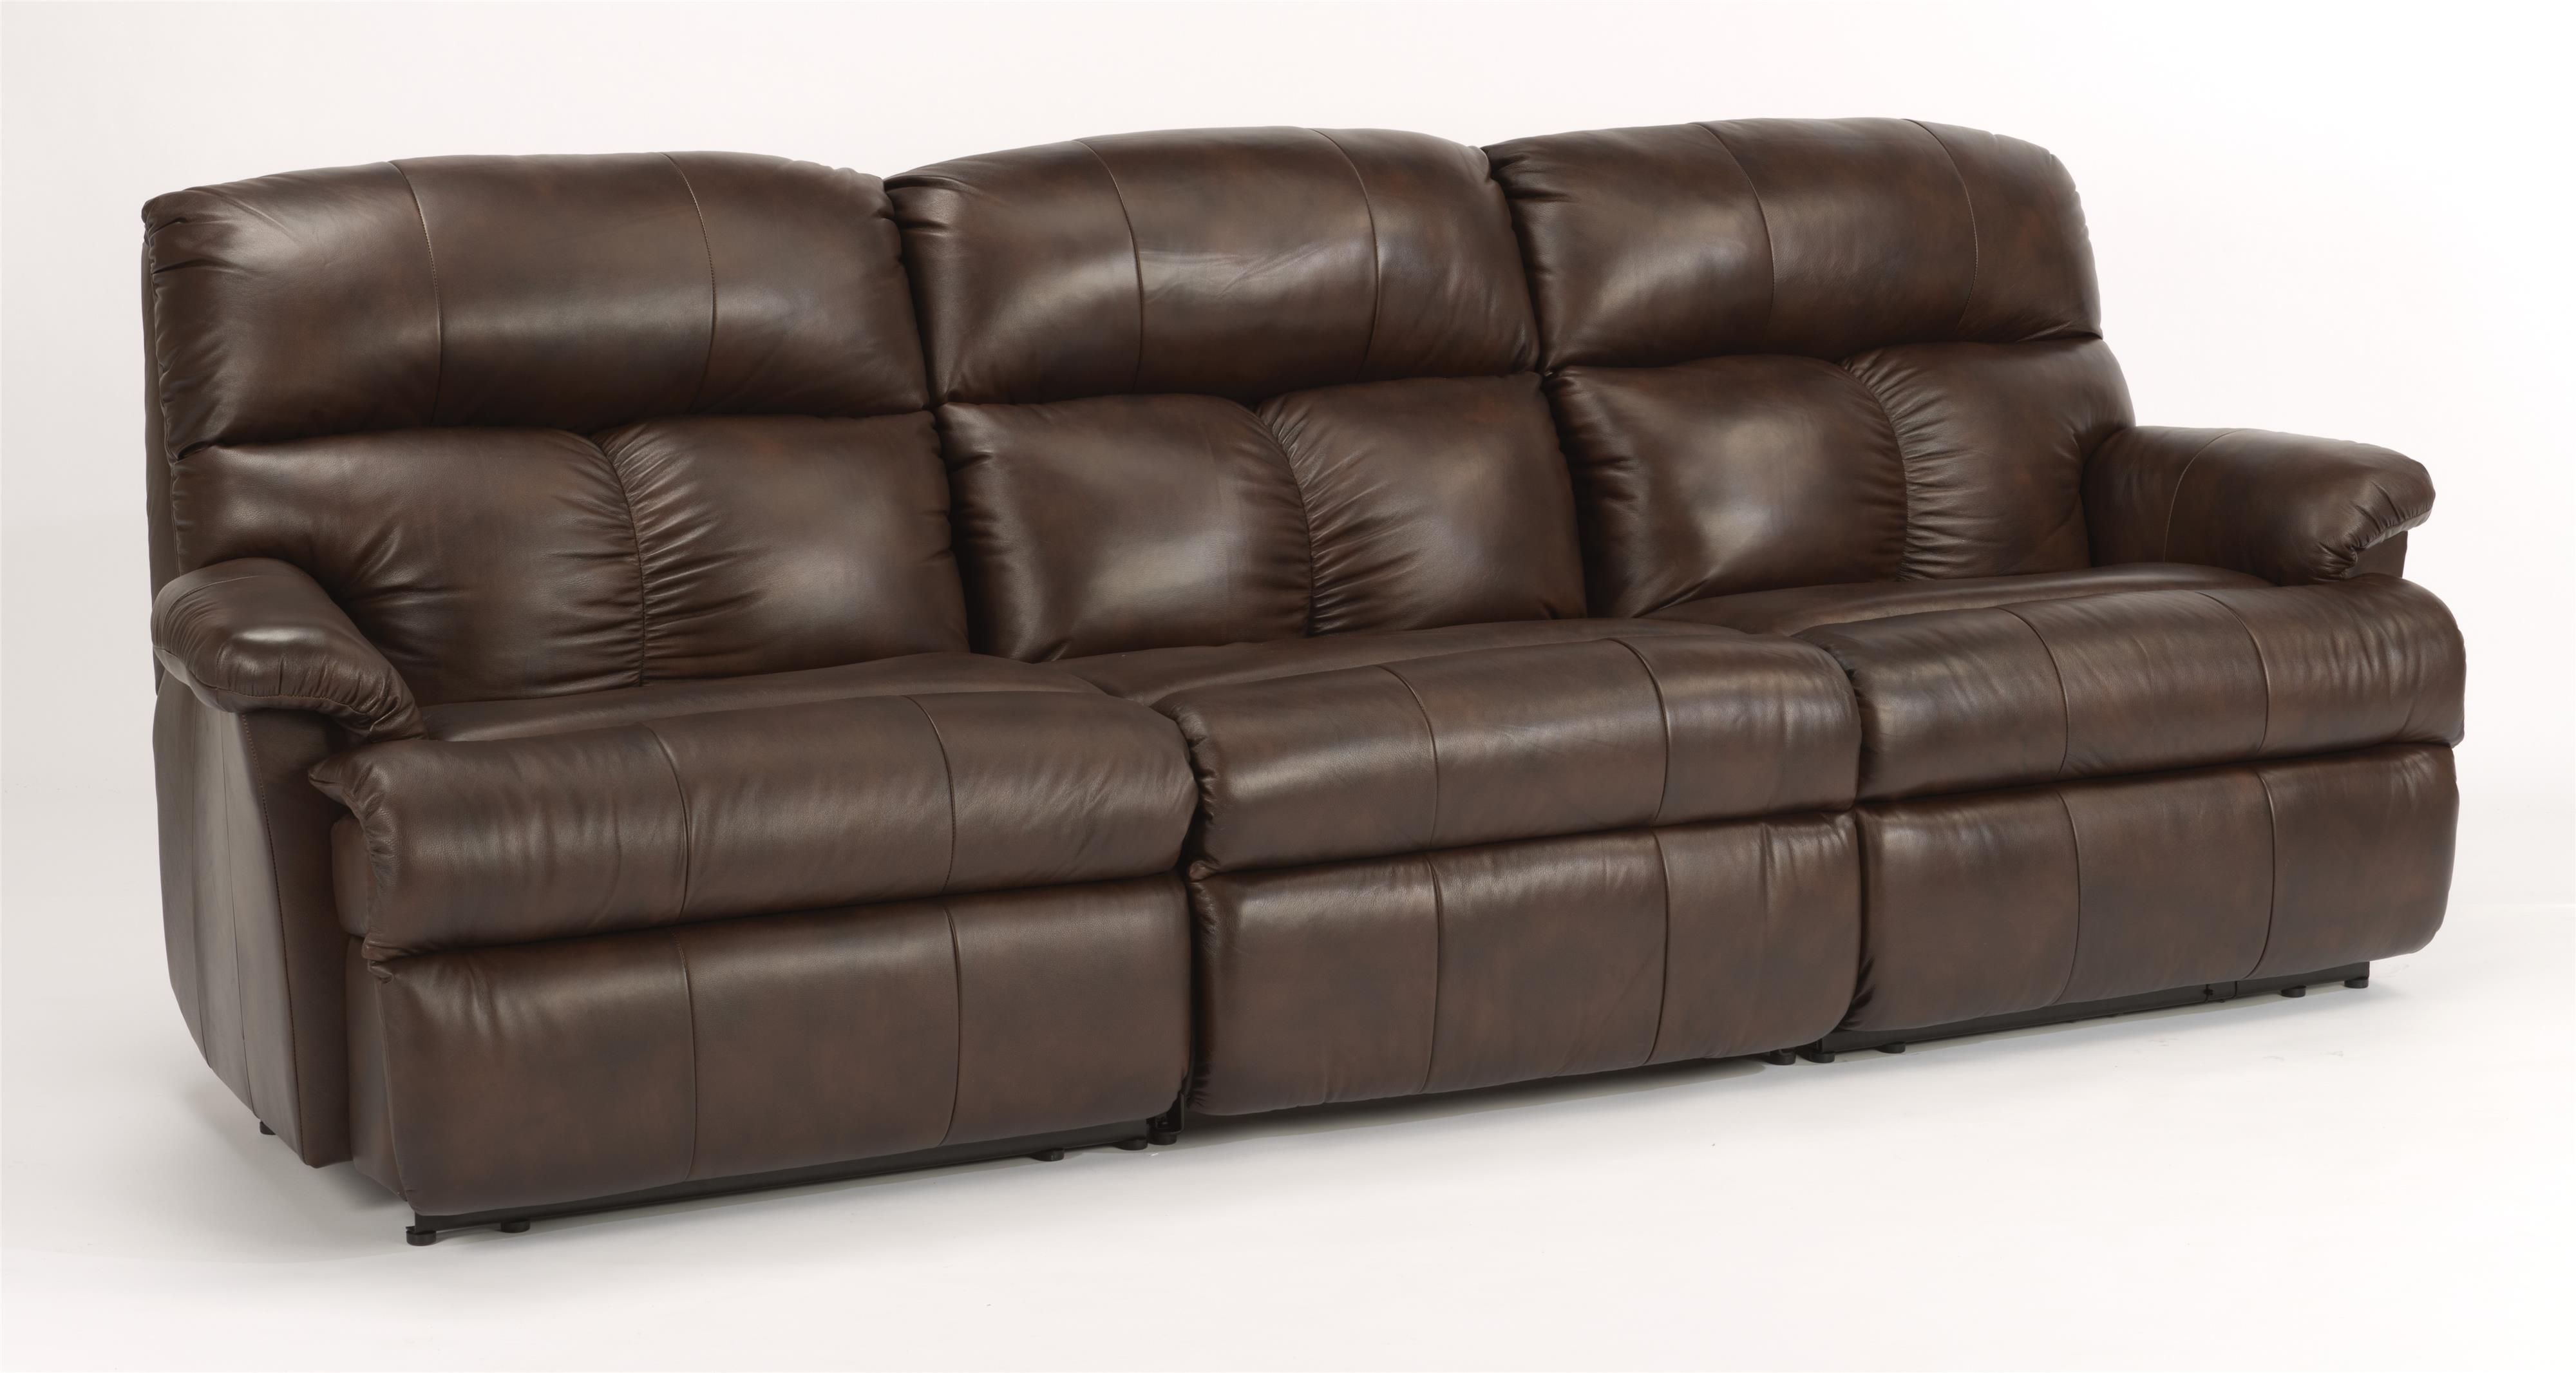 Triton  3 Pc Power Reclining Sectional Sofa by Flexsteel at Thornton Furniture